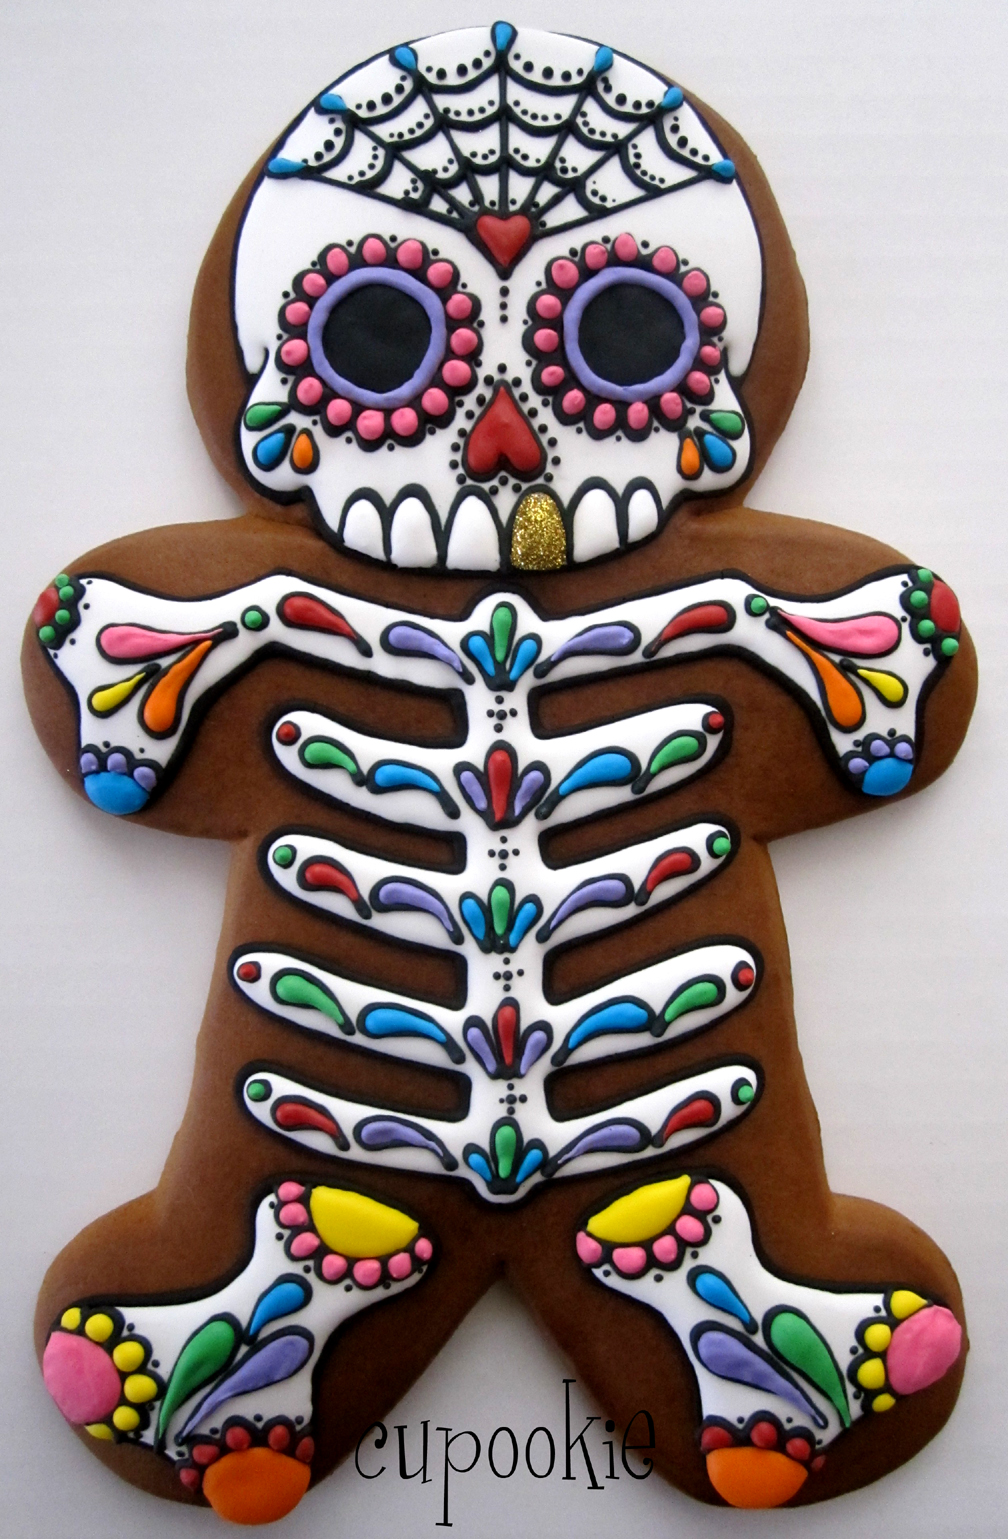 Cupookies Amazing Day Of The Dead Cookie SheWalksSoftly